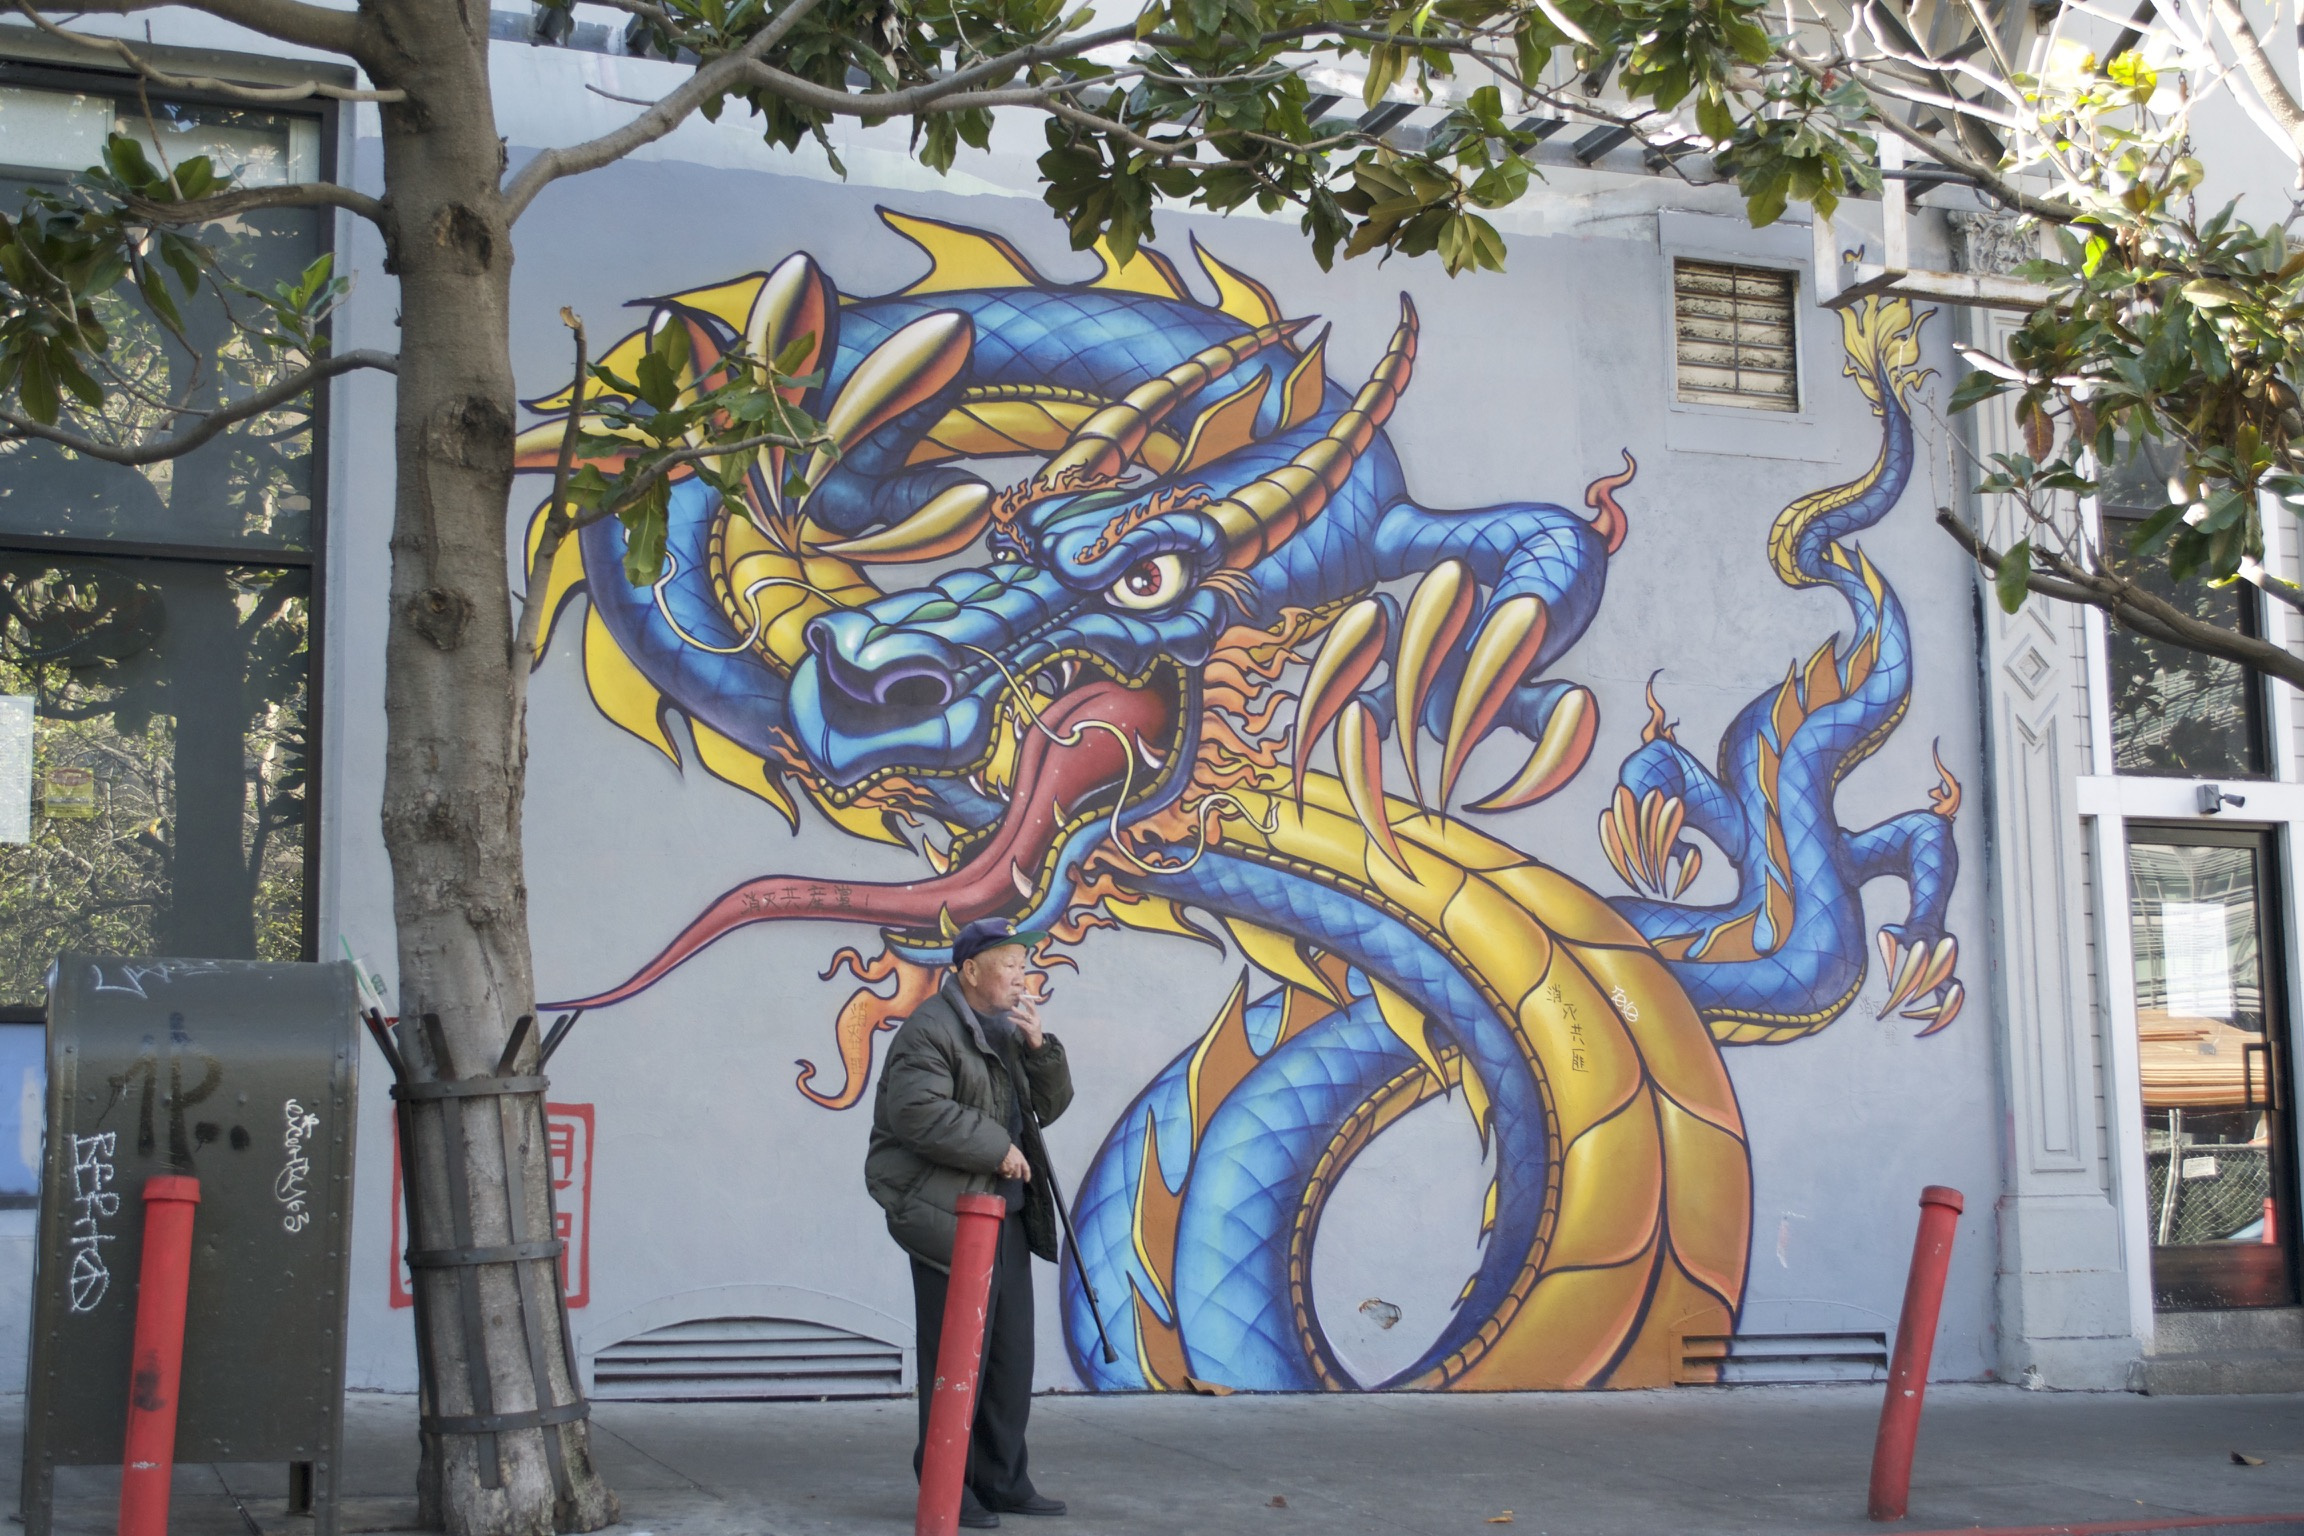 An old smoking man sands in front of a mural of a blue dragon.